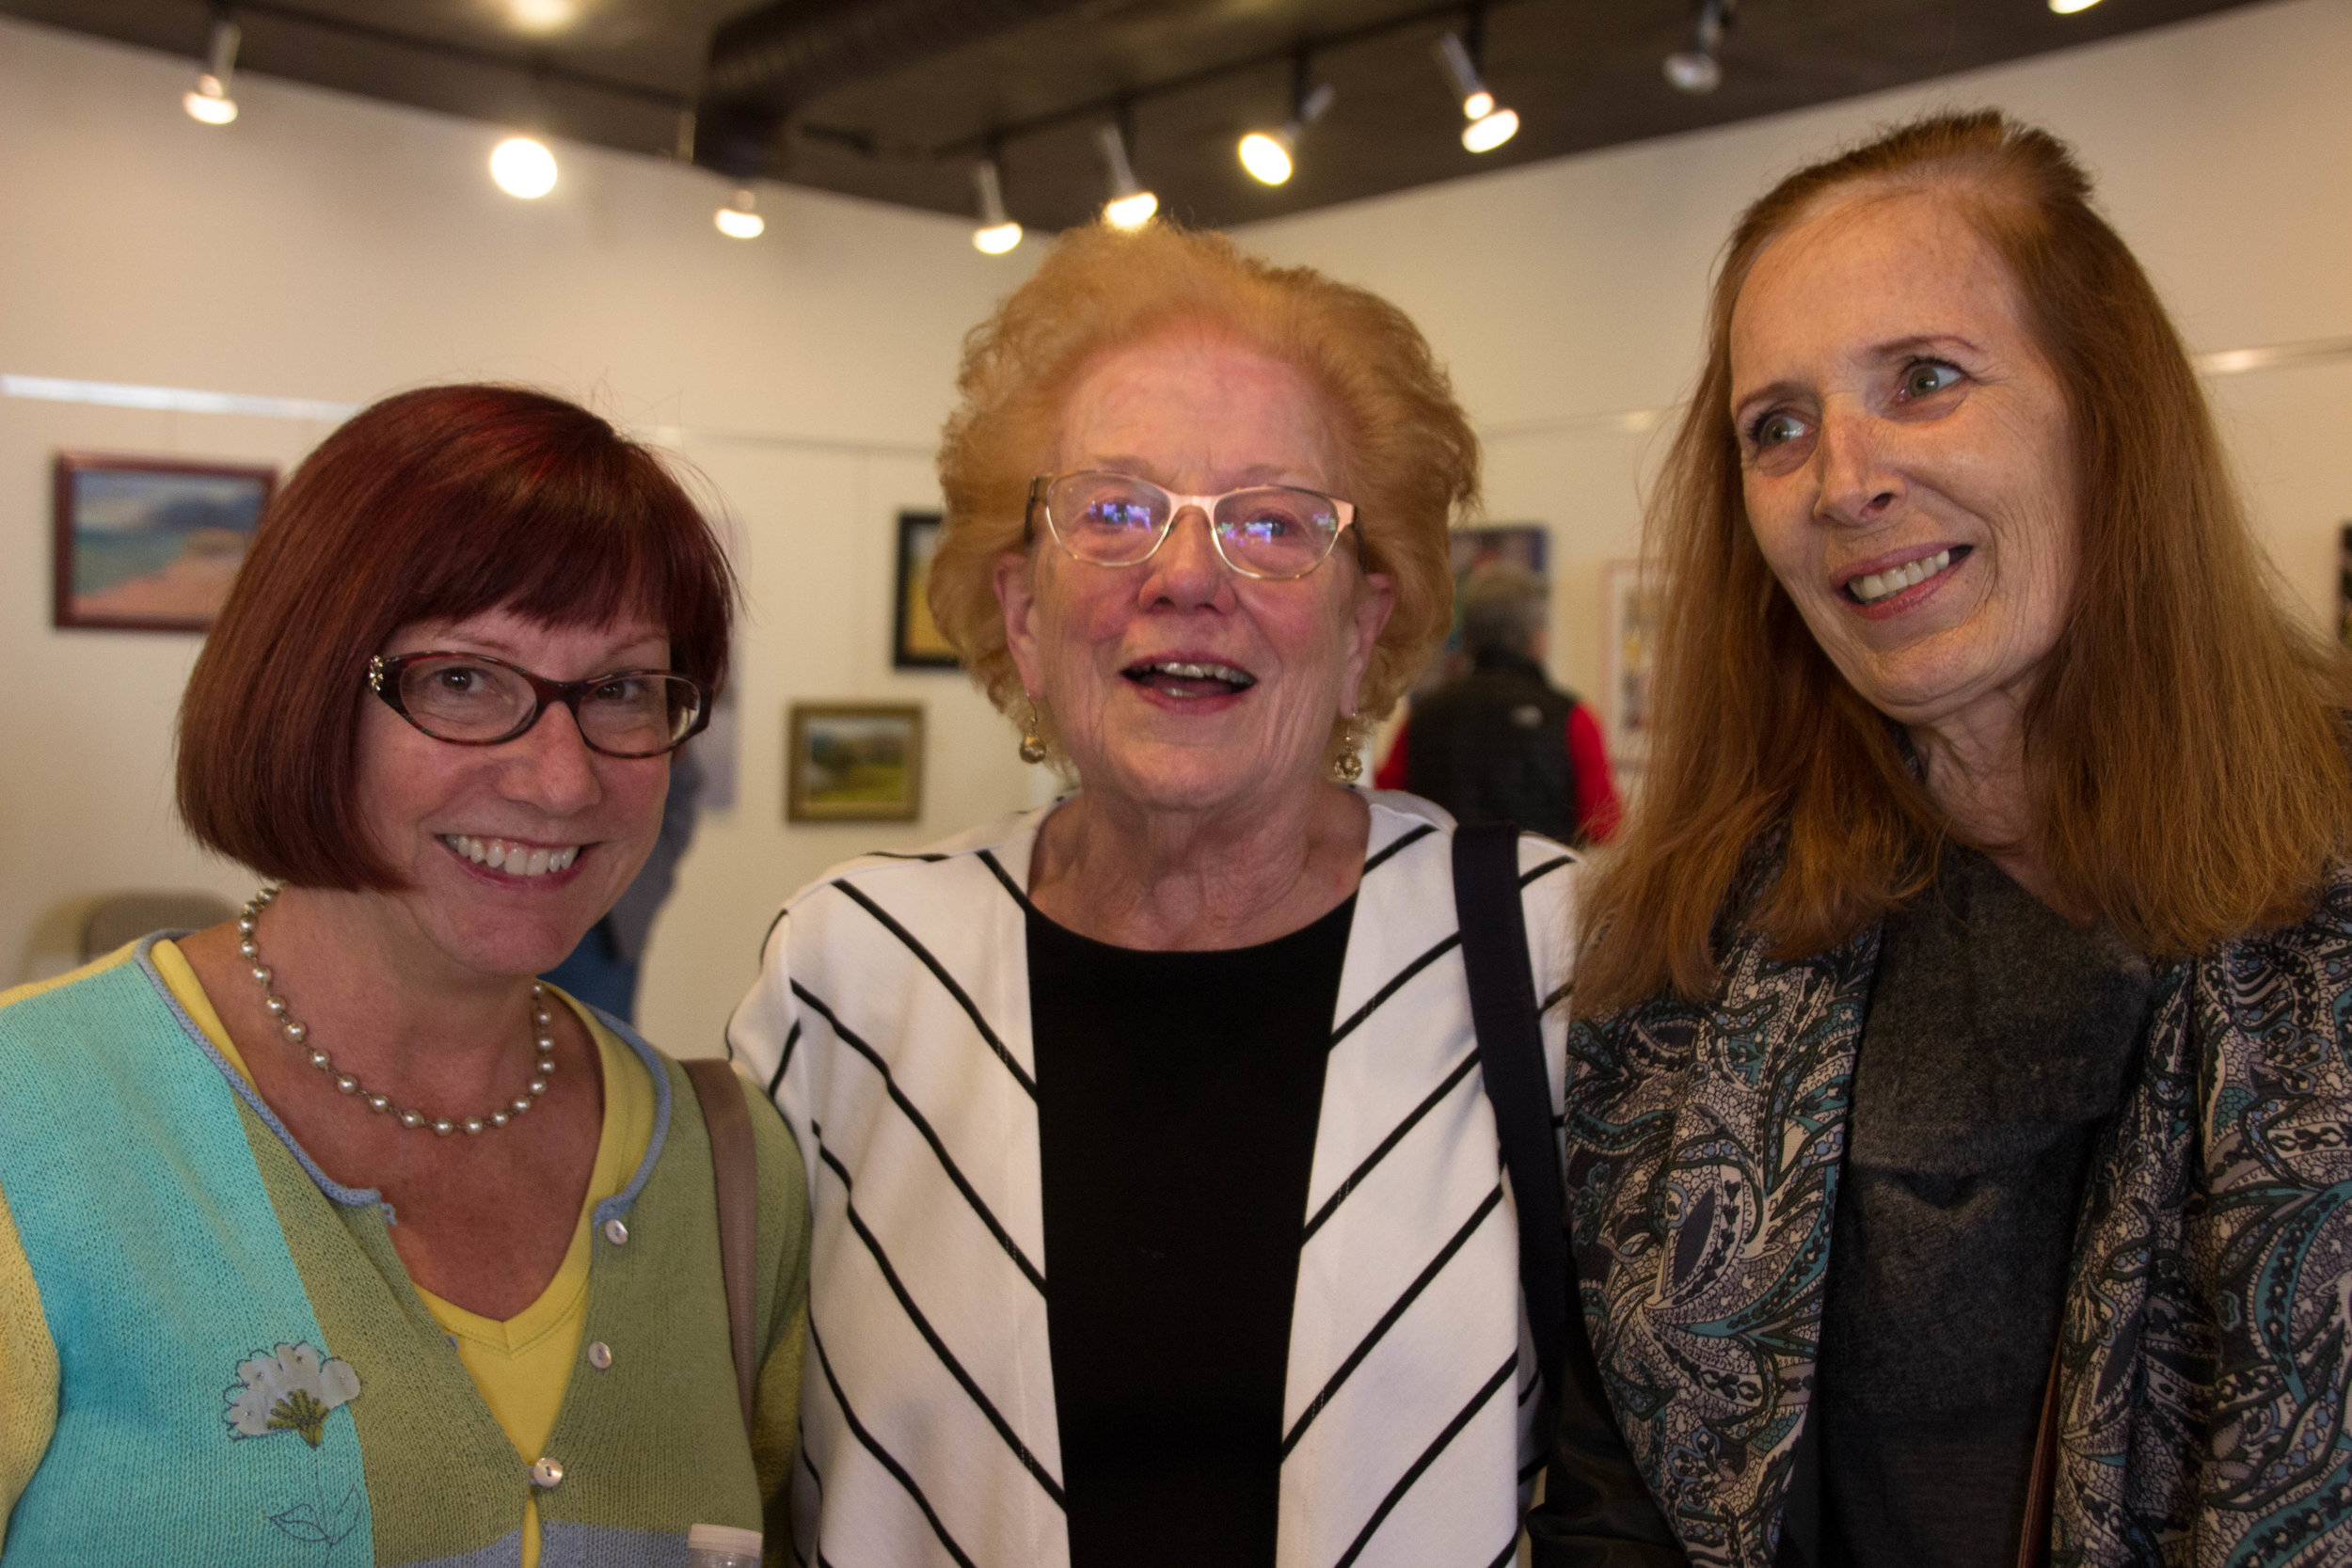 Linda Allen, Bette Prudden (Honorable Mention), and Colleen Taylor West